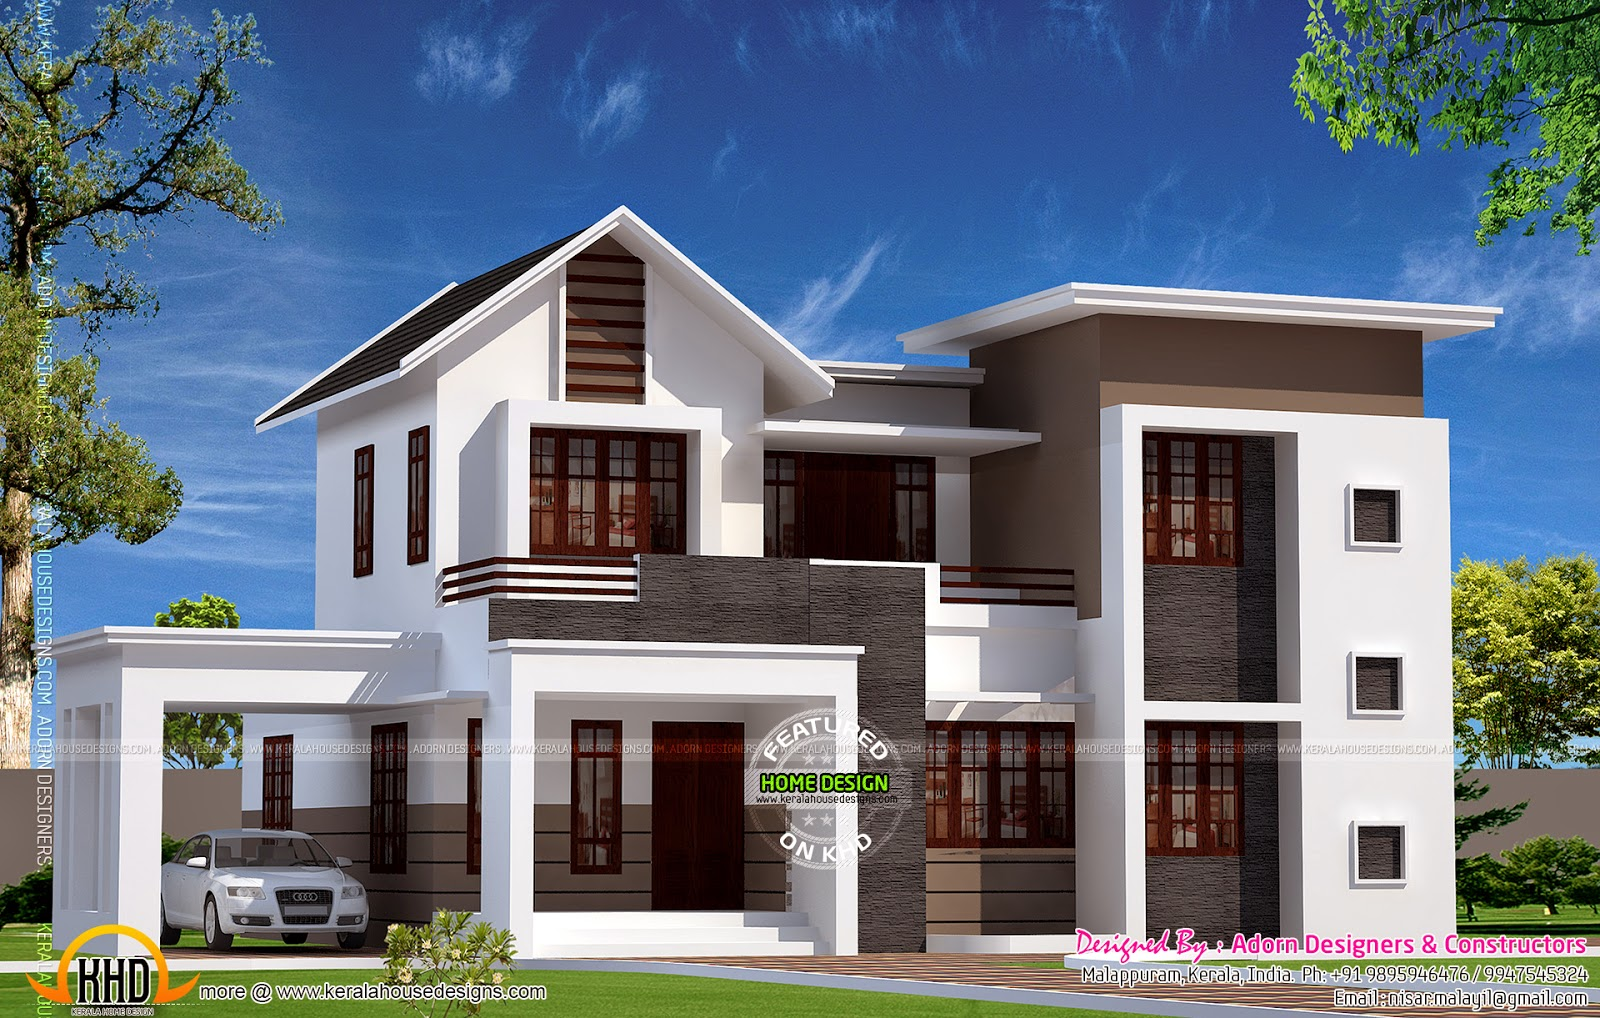 September 2014 - Kerala home design and floor plans